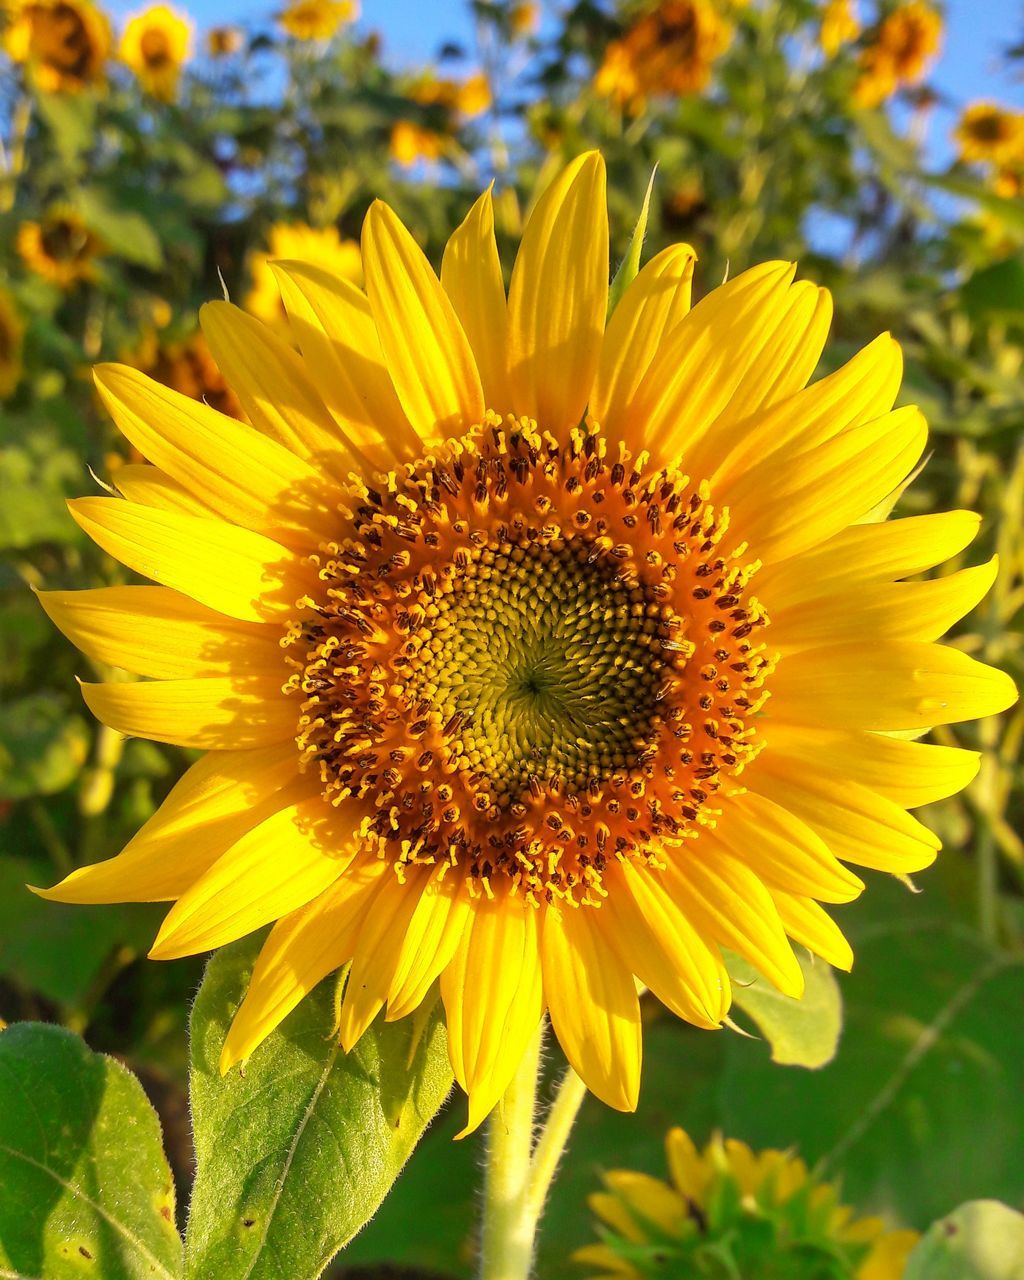 flower, yellow, petal, nature, fragility, beauty in nature, growth, flower head, plant, freshness, sunflower, no people, close-up, outdoors, blooming, field, day, pollen